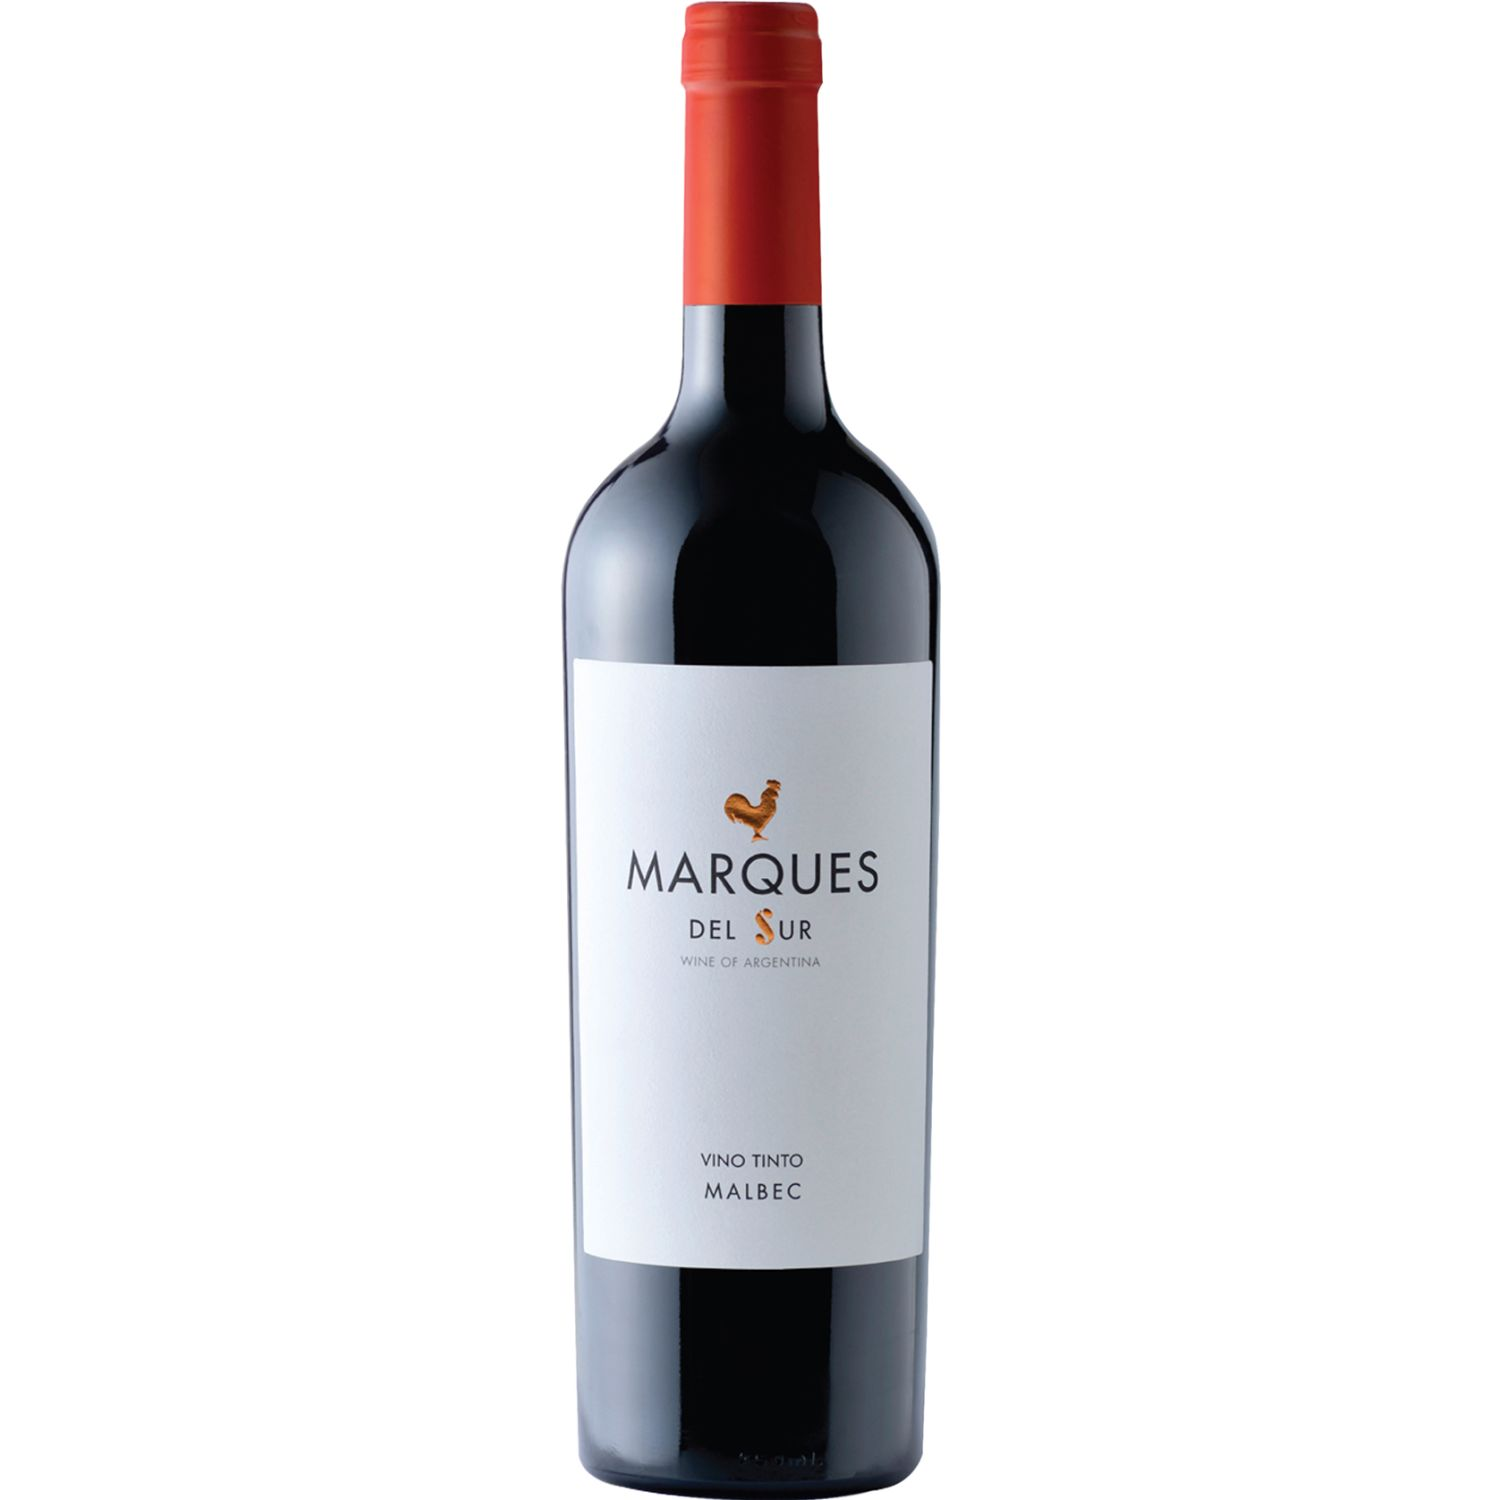 MARQUES DEL SUR Vino Tinto Roble Malbec X 750ml SIN COLOR Tinto